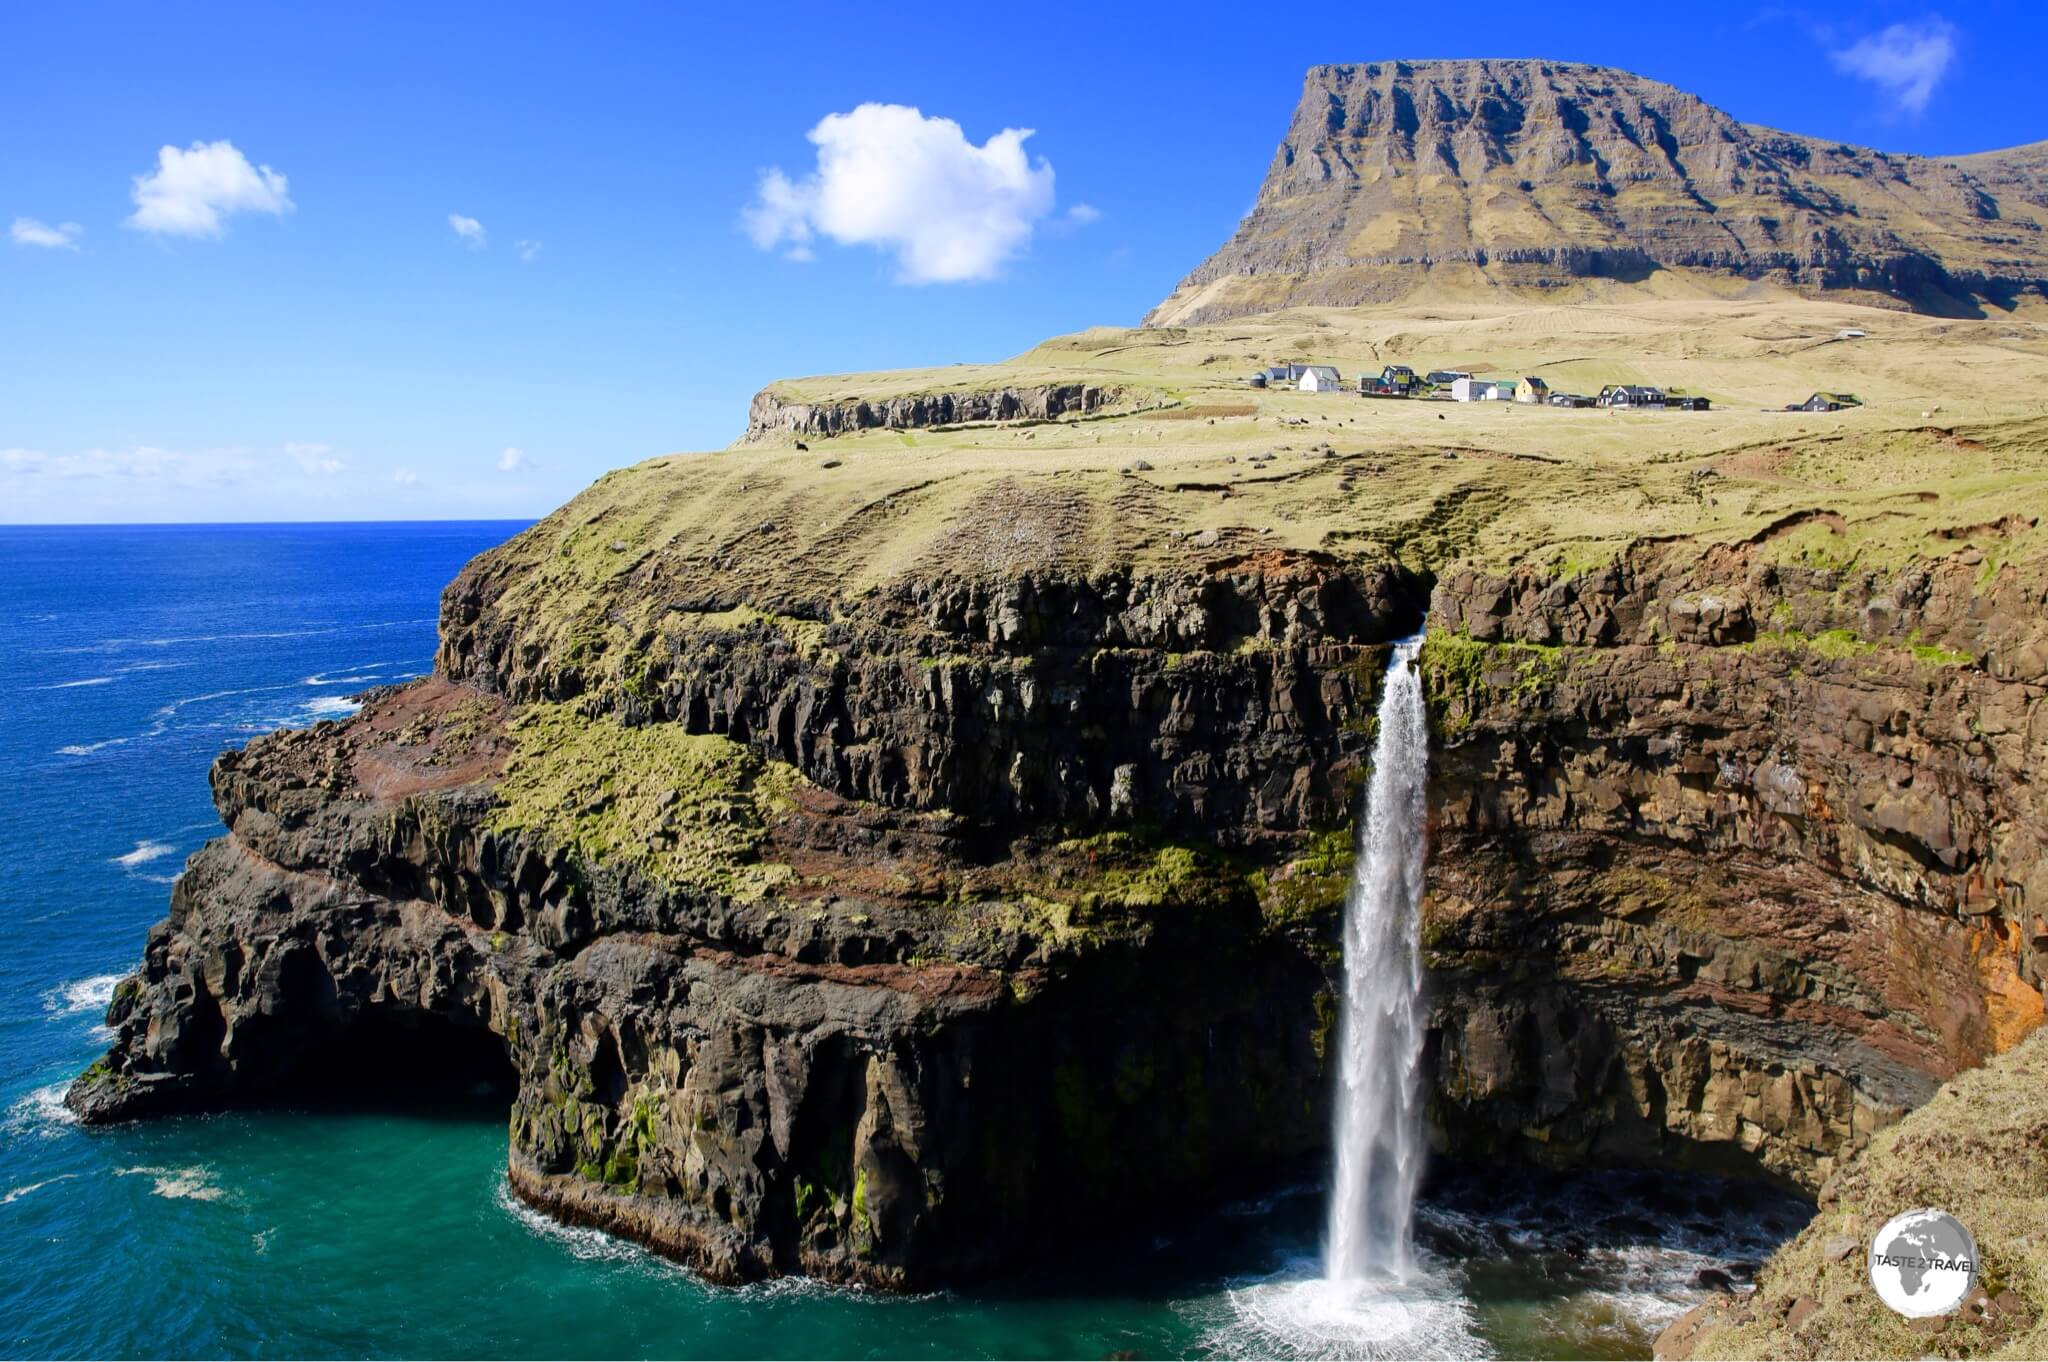 Mulafossur Waterfall plunges 60 metres into the Atlantic Ocean.